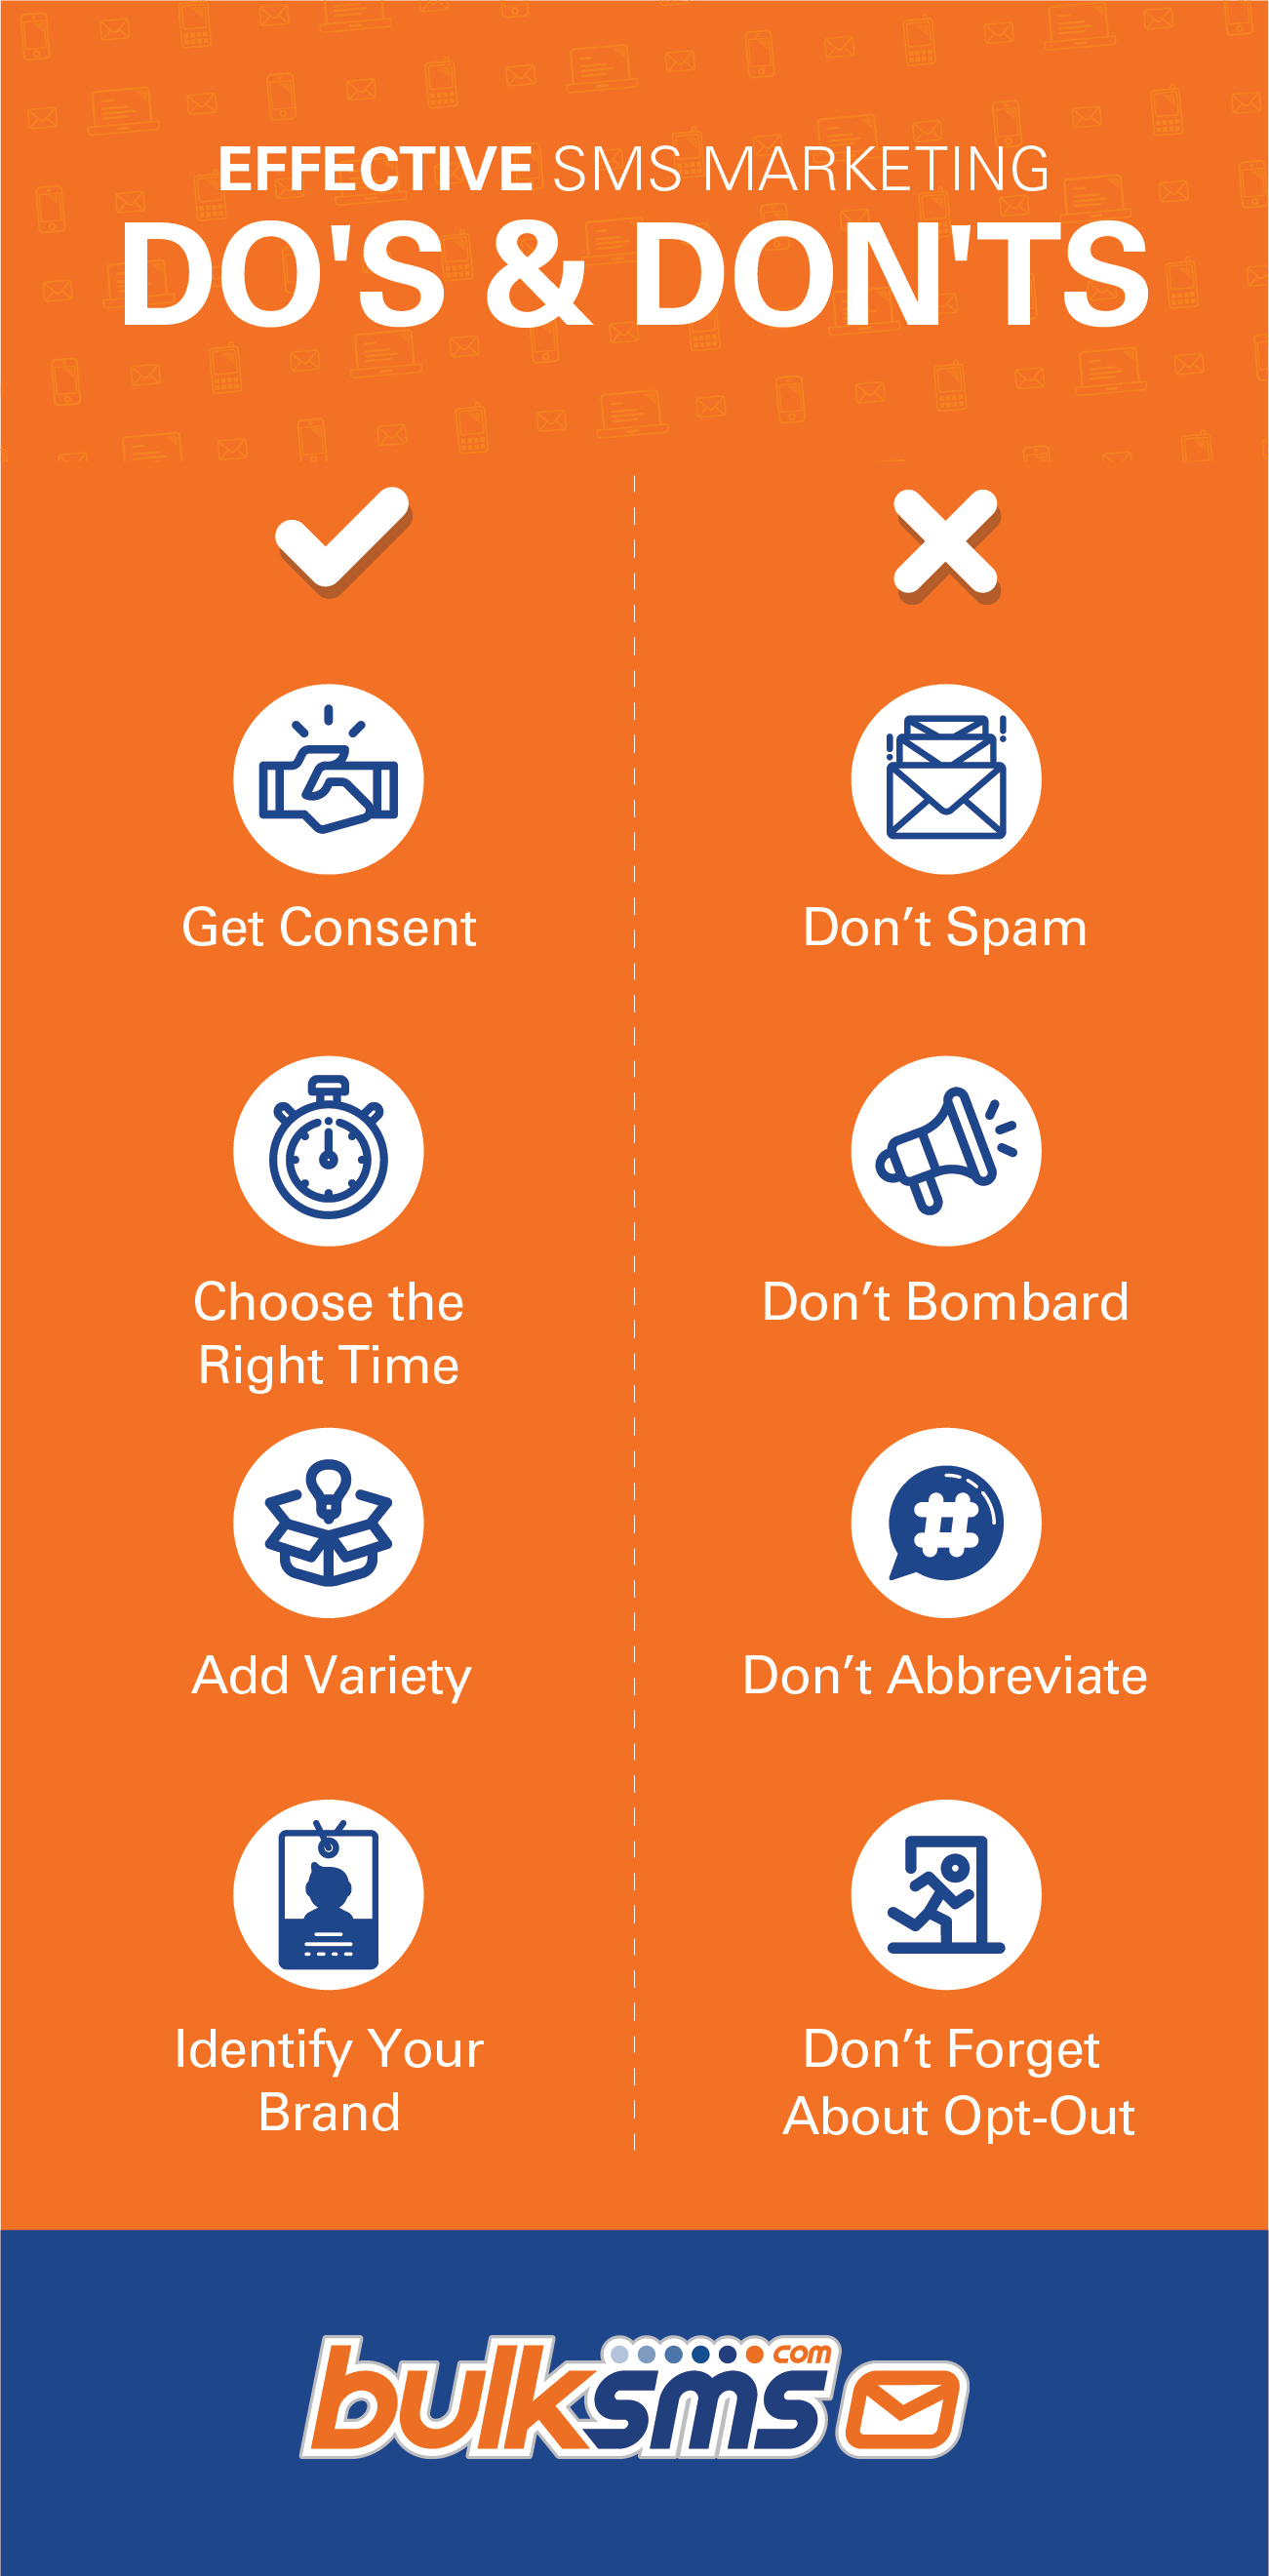 Effective SMS Marketing Do's and Dont's